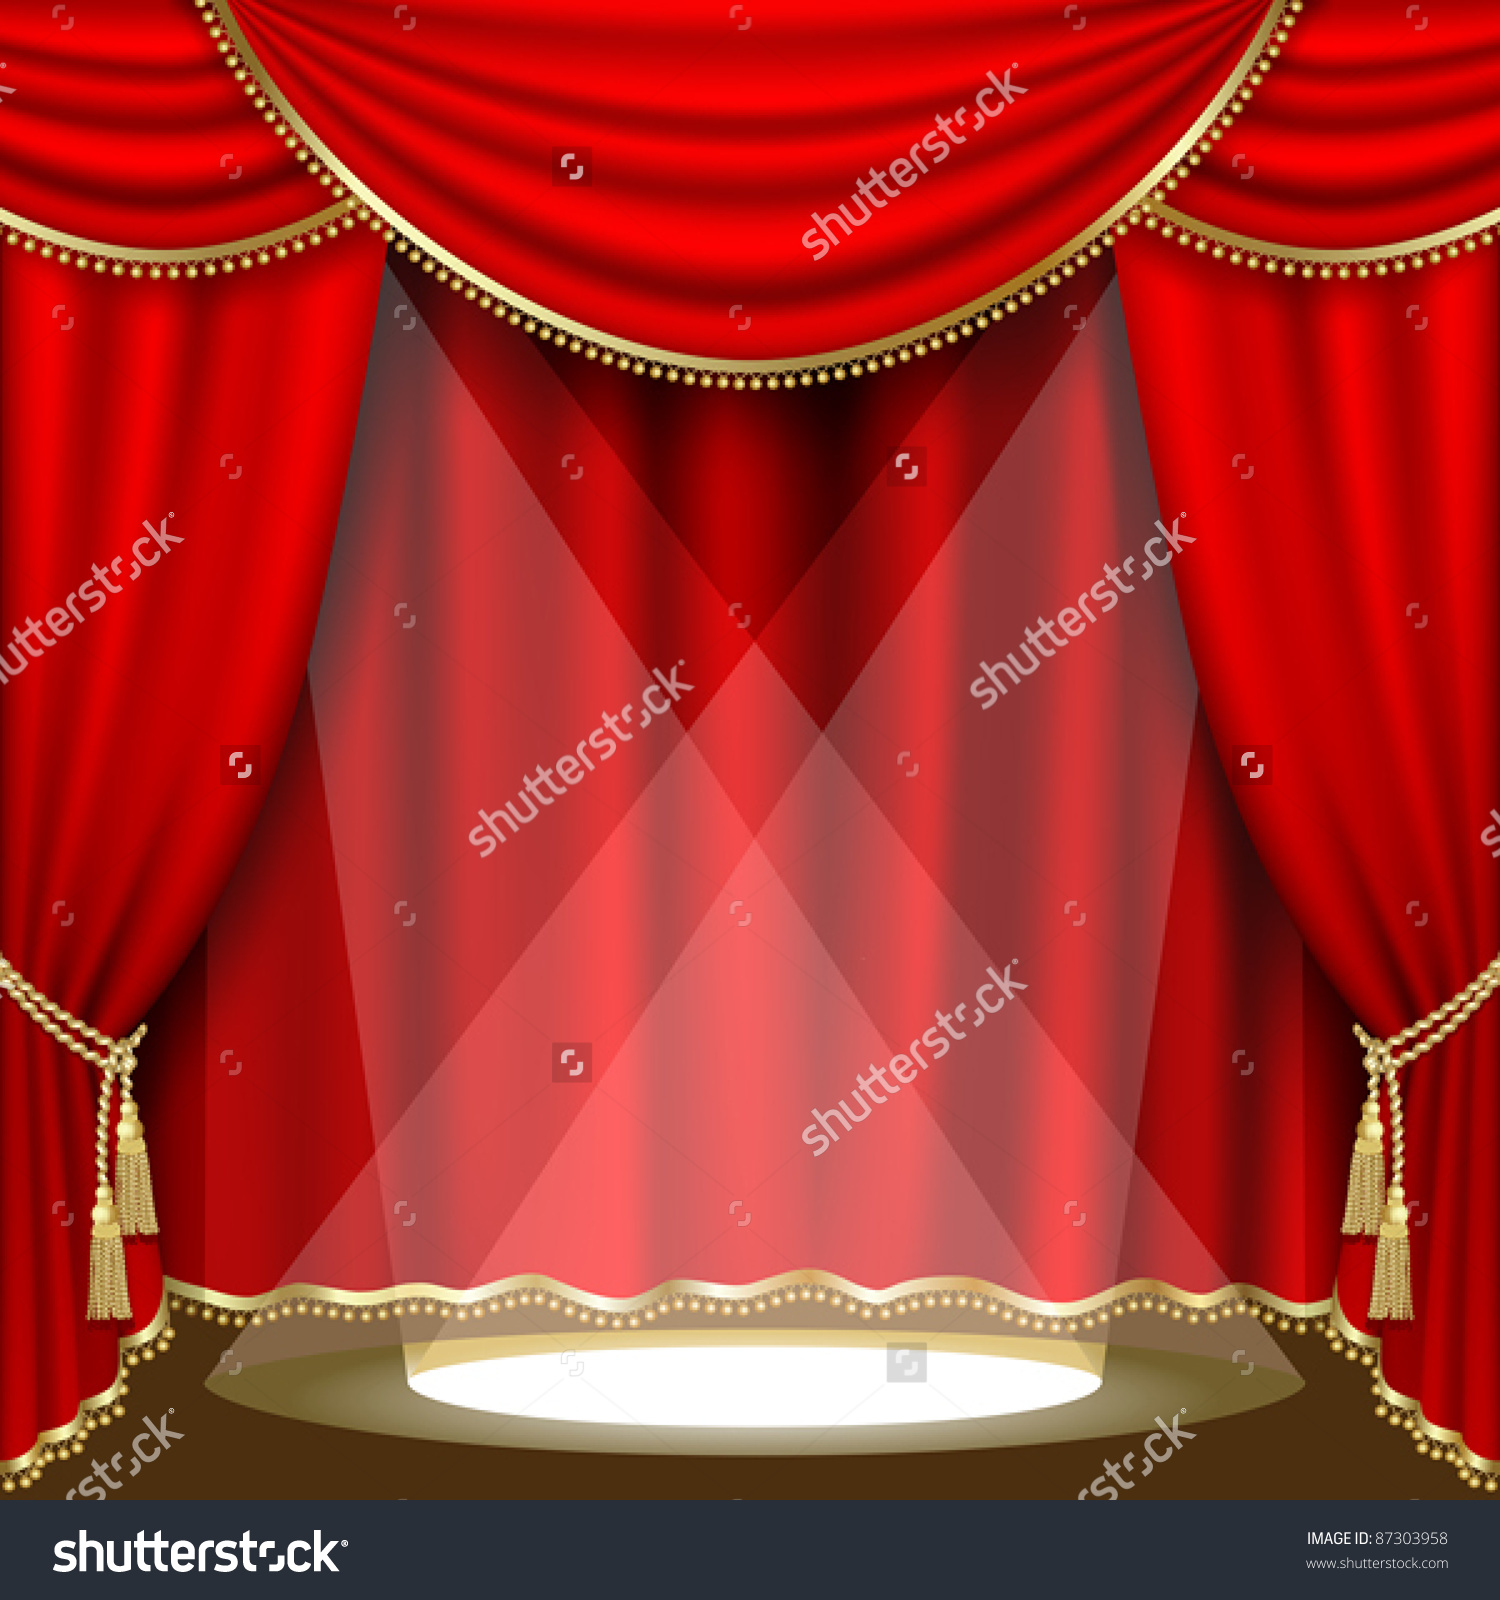 Theater Stage Red Curtain Clipping Mask Stock Vector 87303958.